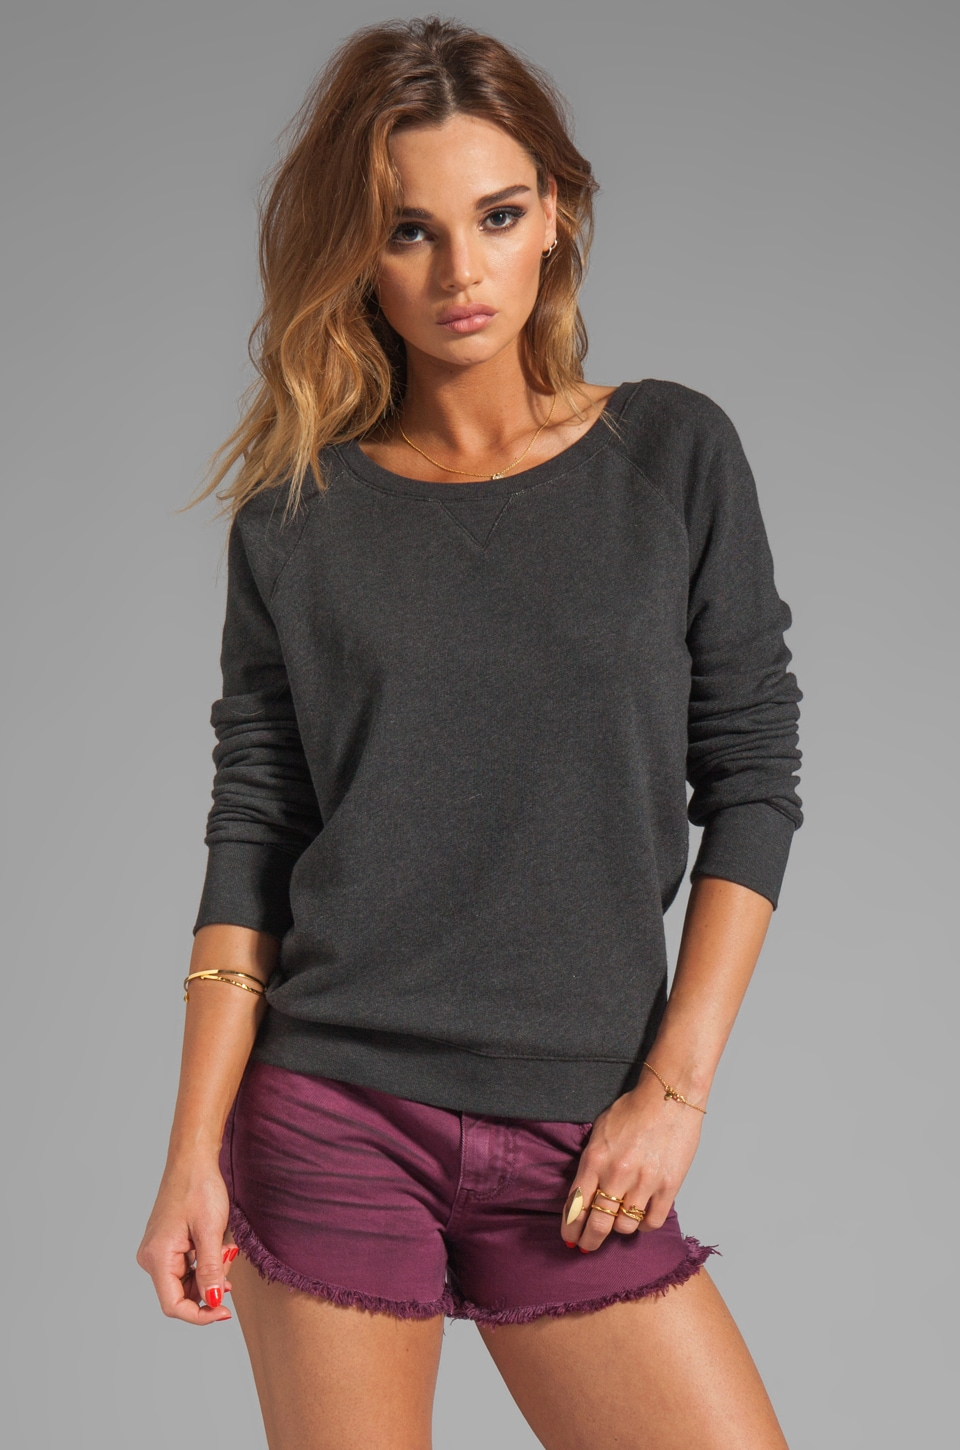 G-Star Slim Sweatshirt in Black Heather